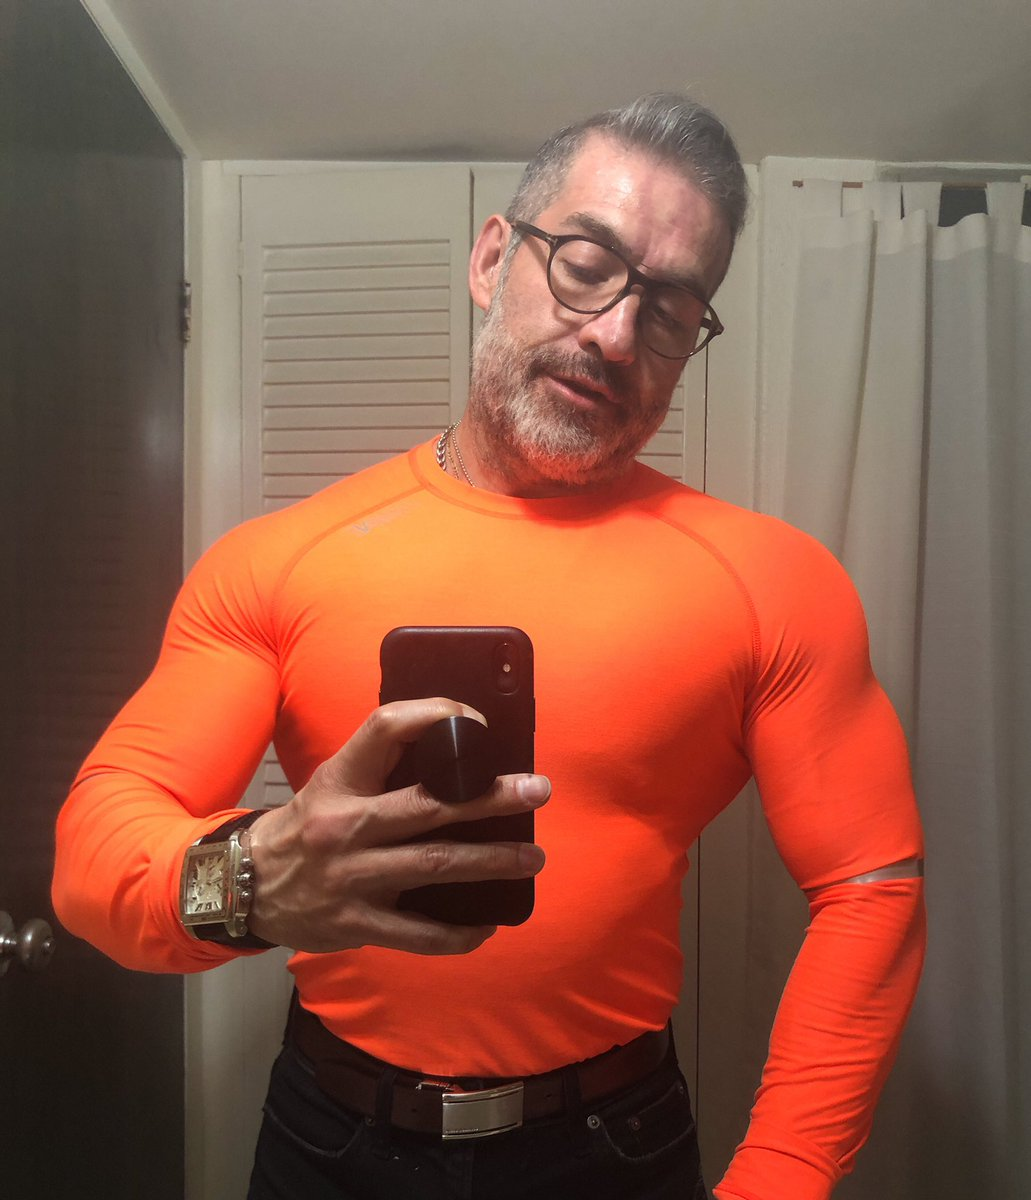 The Sunday Selfie!#vamospormas#trabajoconresultados #muscleandhealth #bigmuscles #bodybuilding #bodybuilder #PepeOliva #gains<br>http://pic.twitter.com/zQ1ehqdxNJ